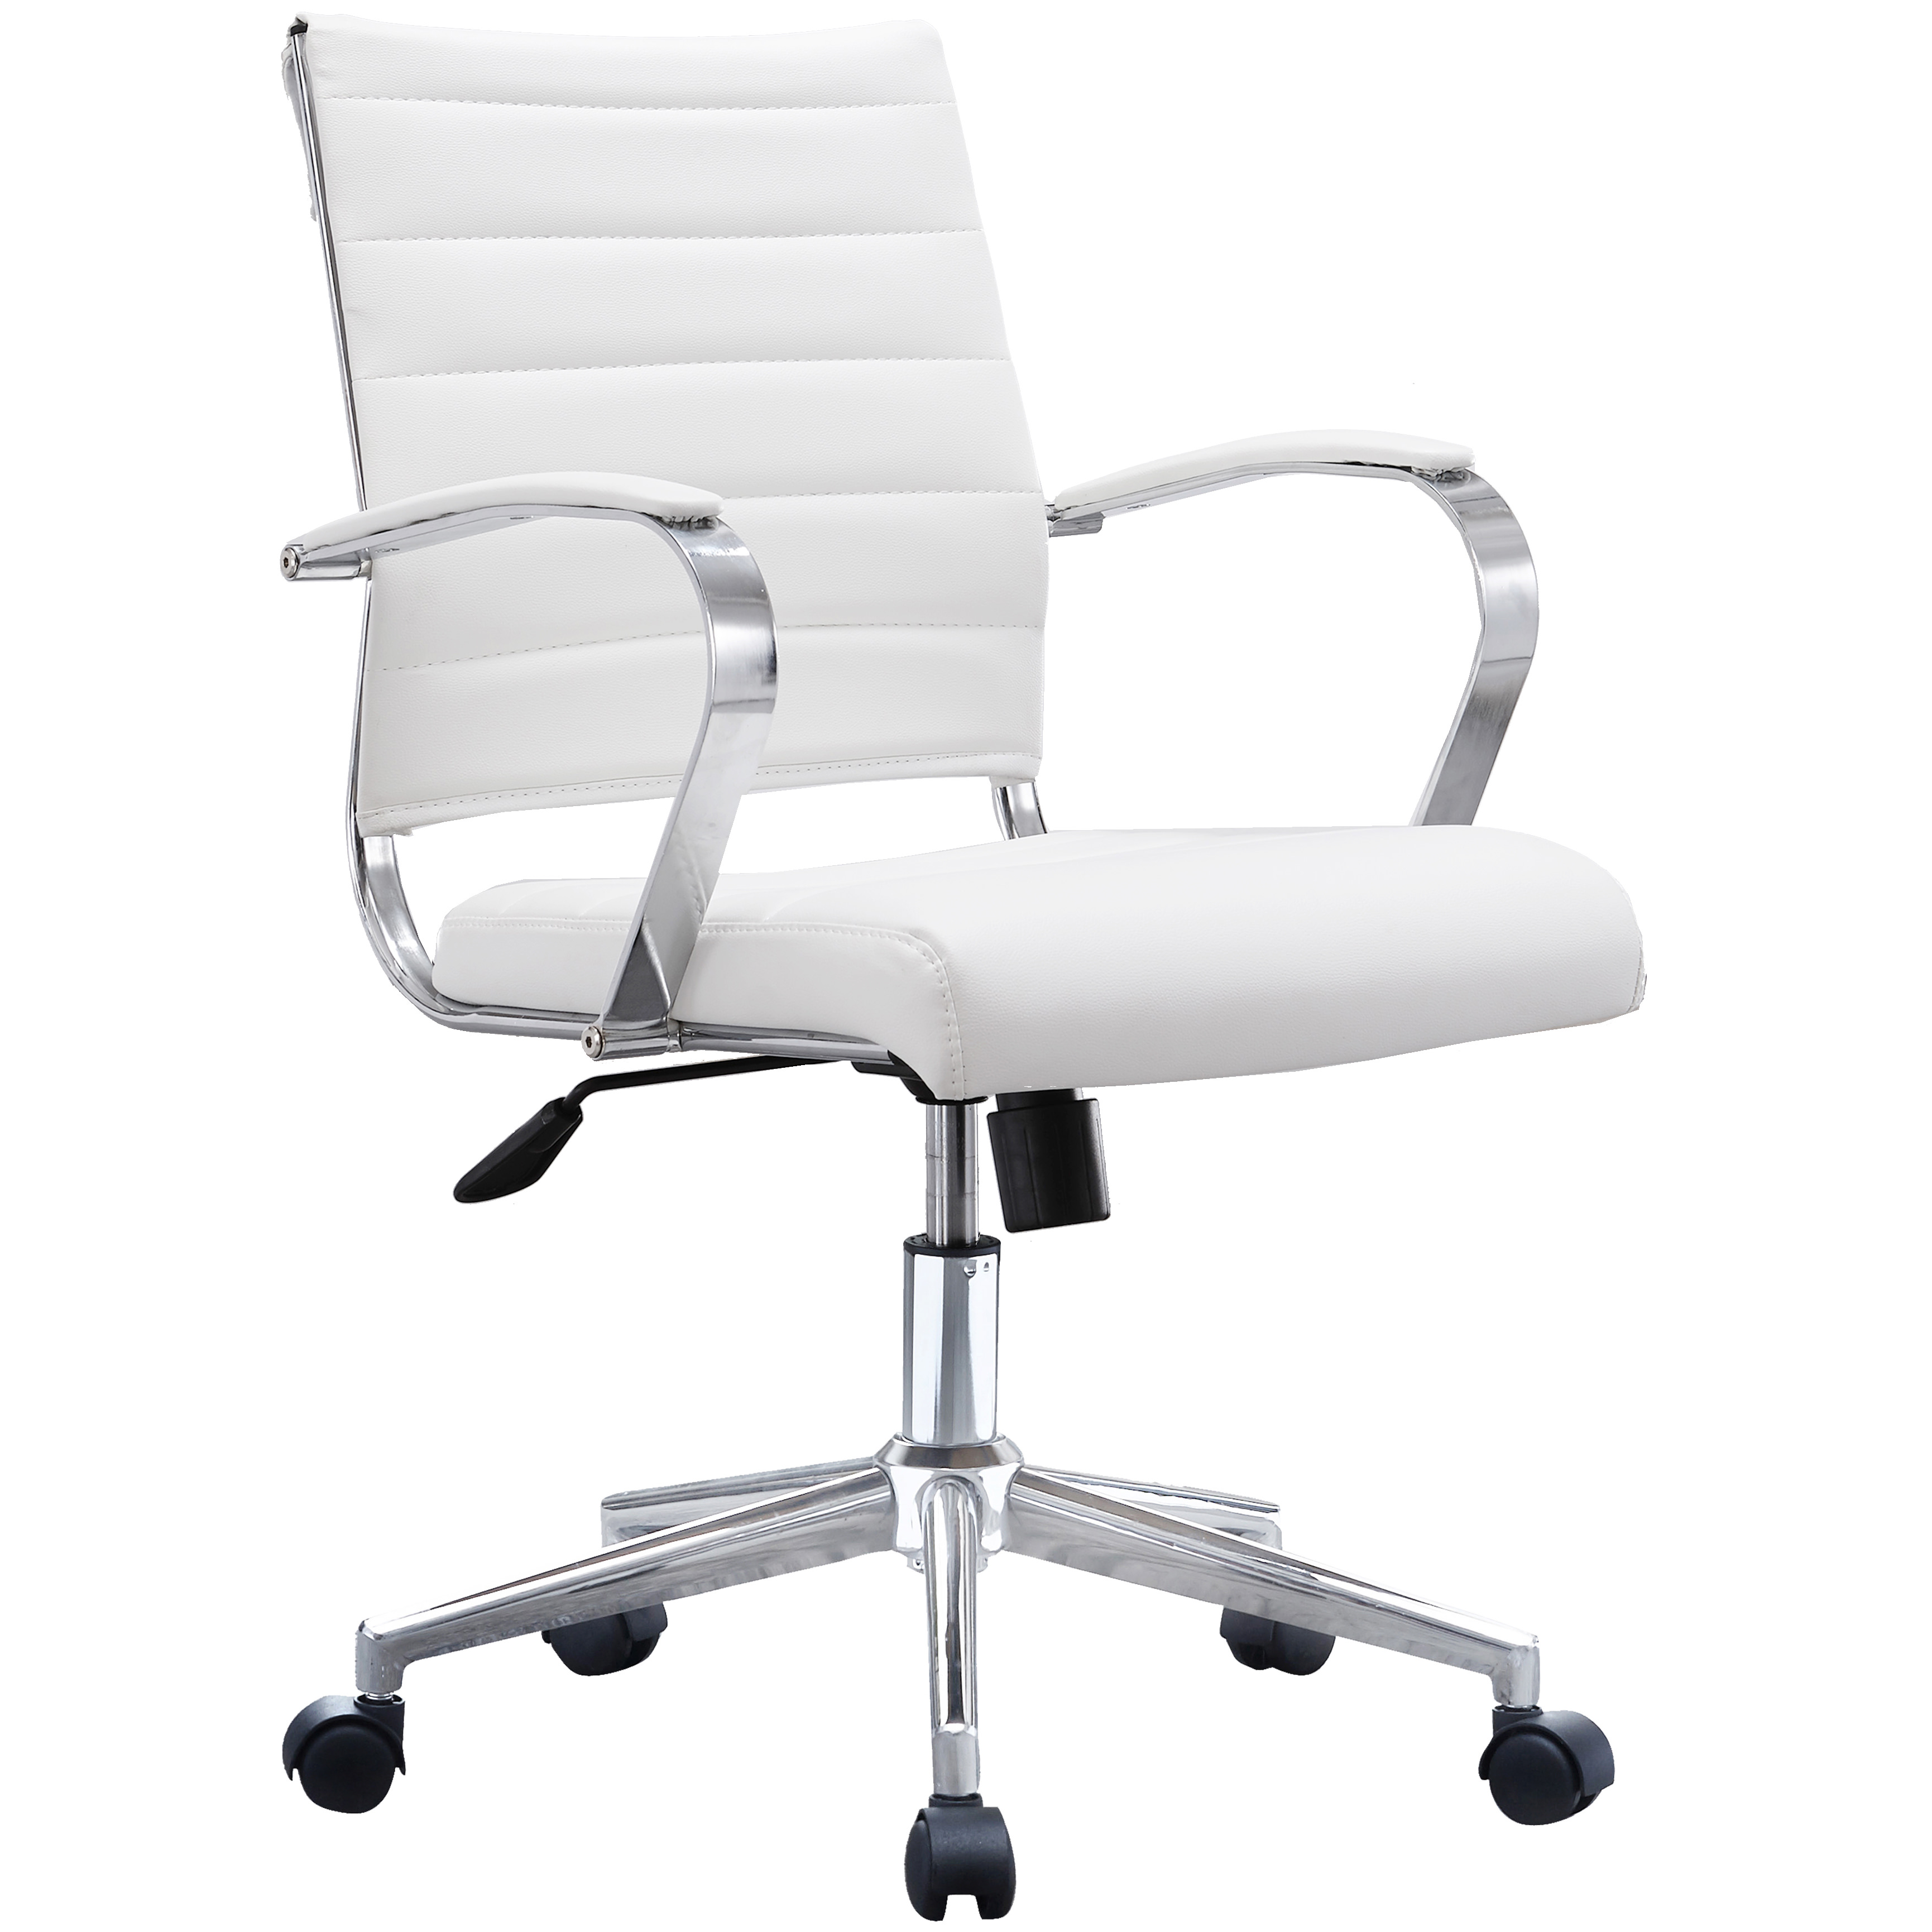 office chair ergonomic cushion graco duodiner lx high white ribbed modern mid back pu leather with seat task swivel tilt arms conference room chairs manager executive boss